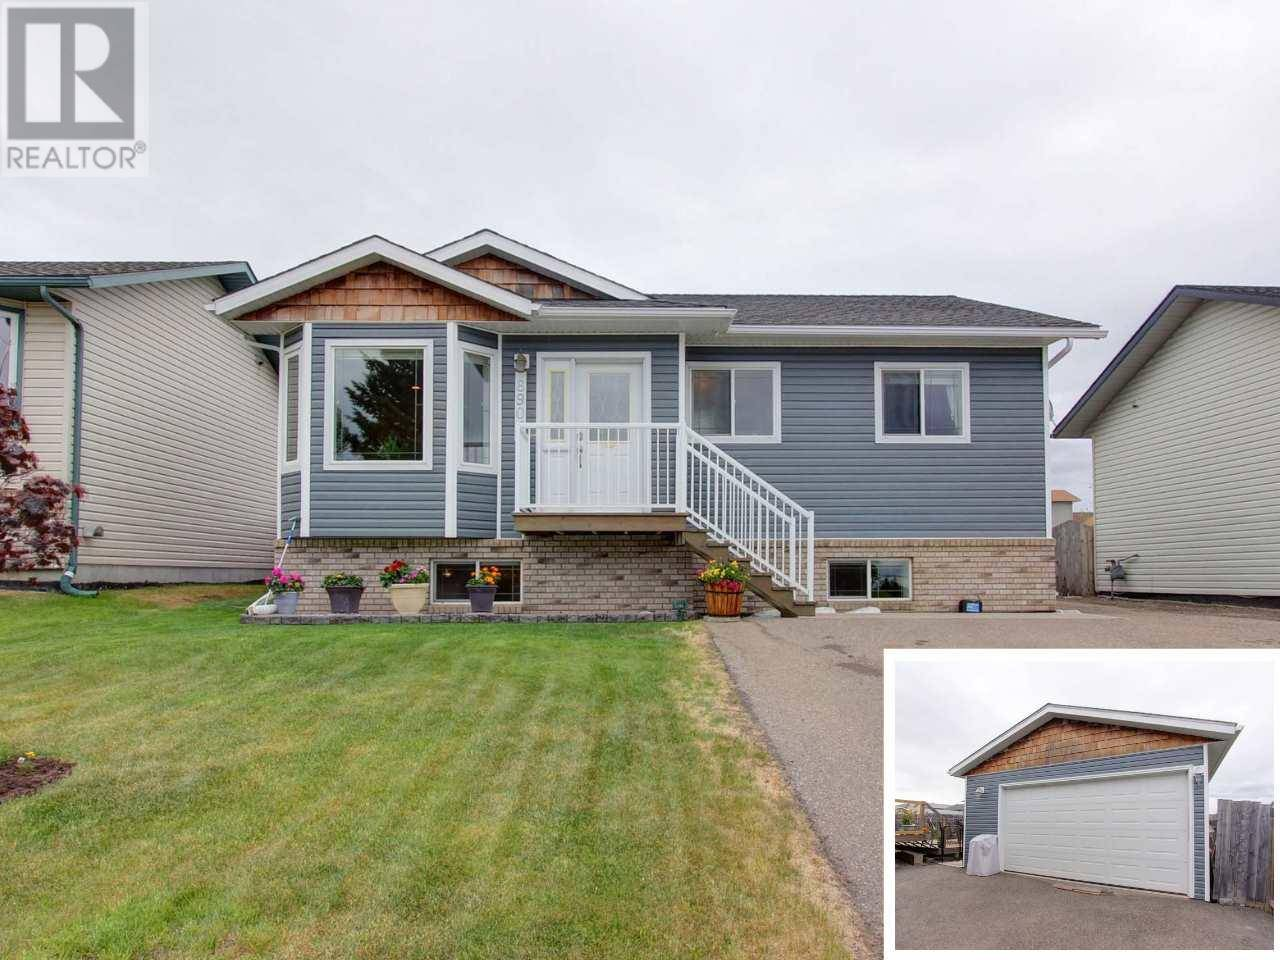 House for sale at 8907 115 Ave Fort St. John British Columbia - MLS: R2444323